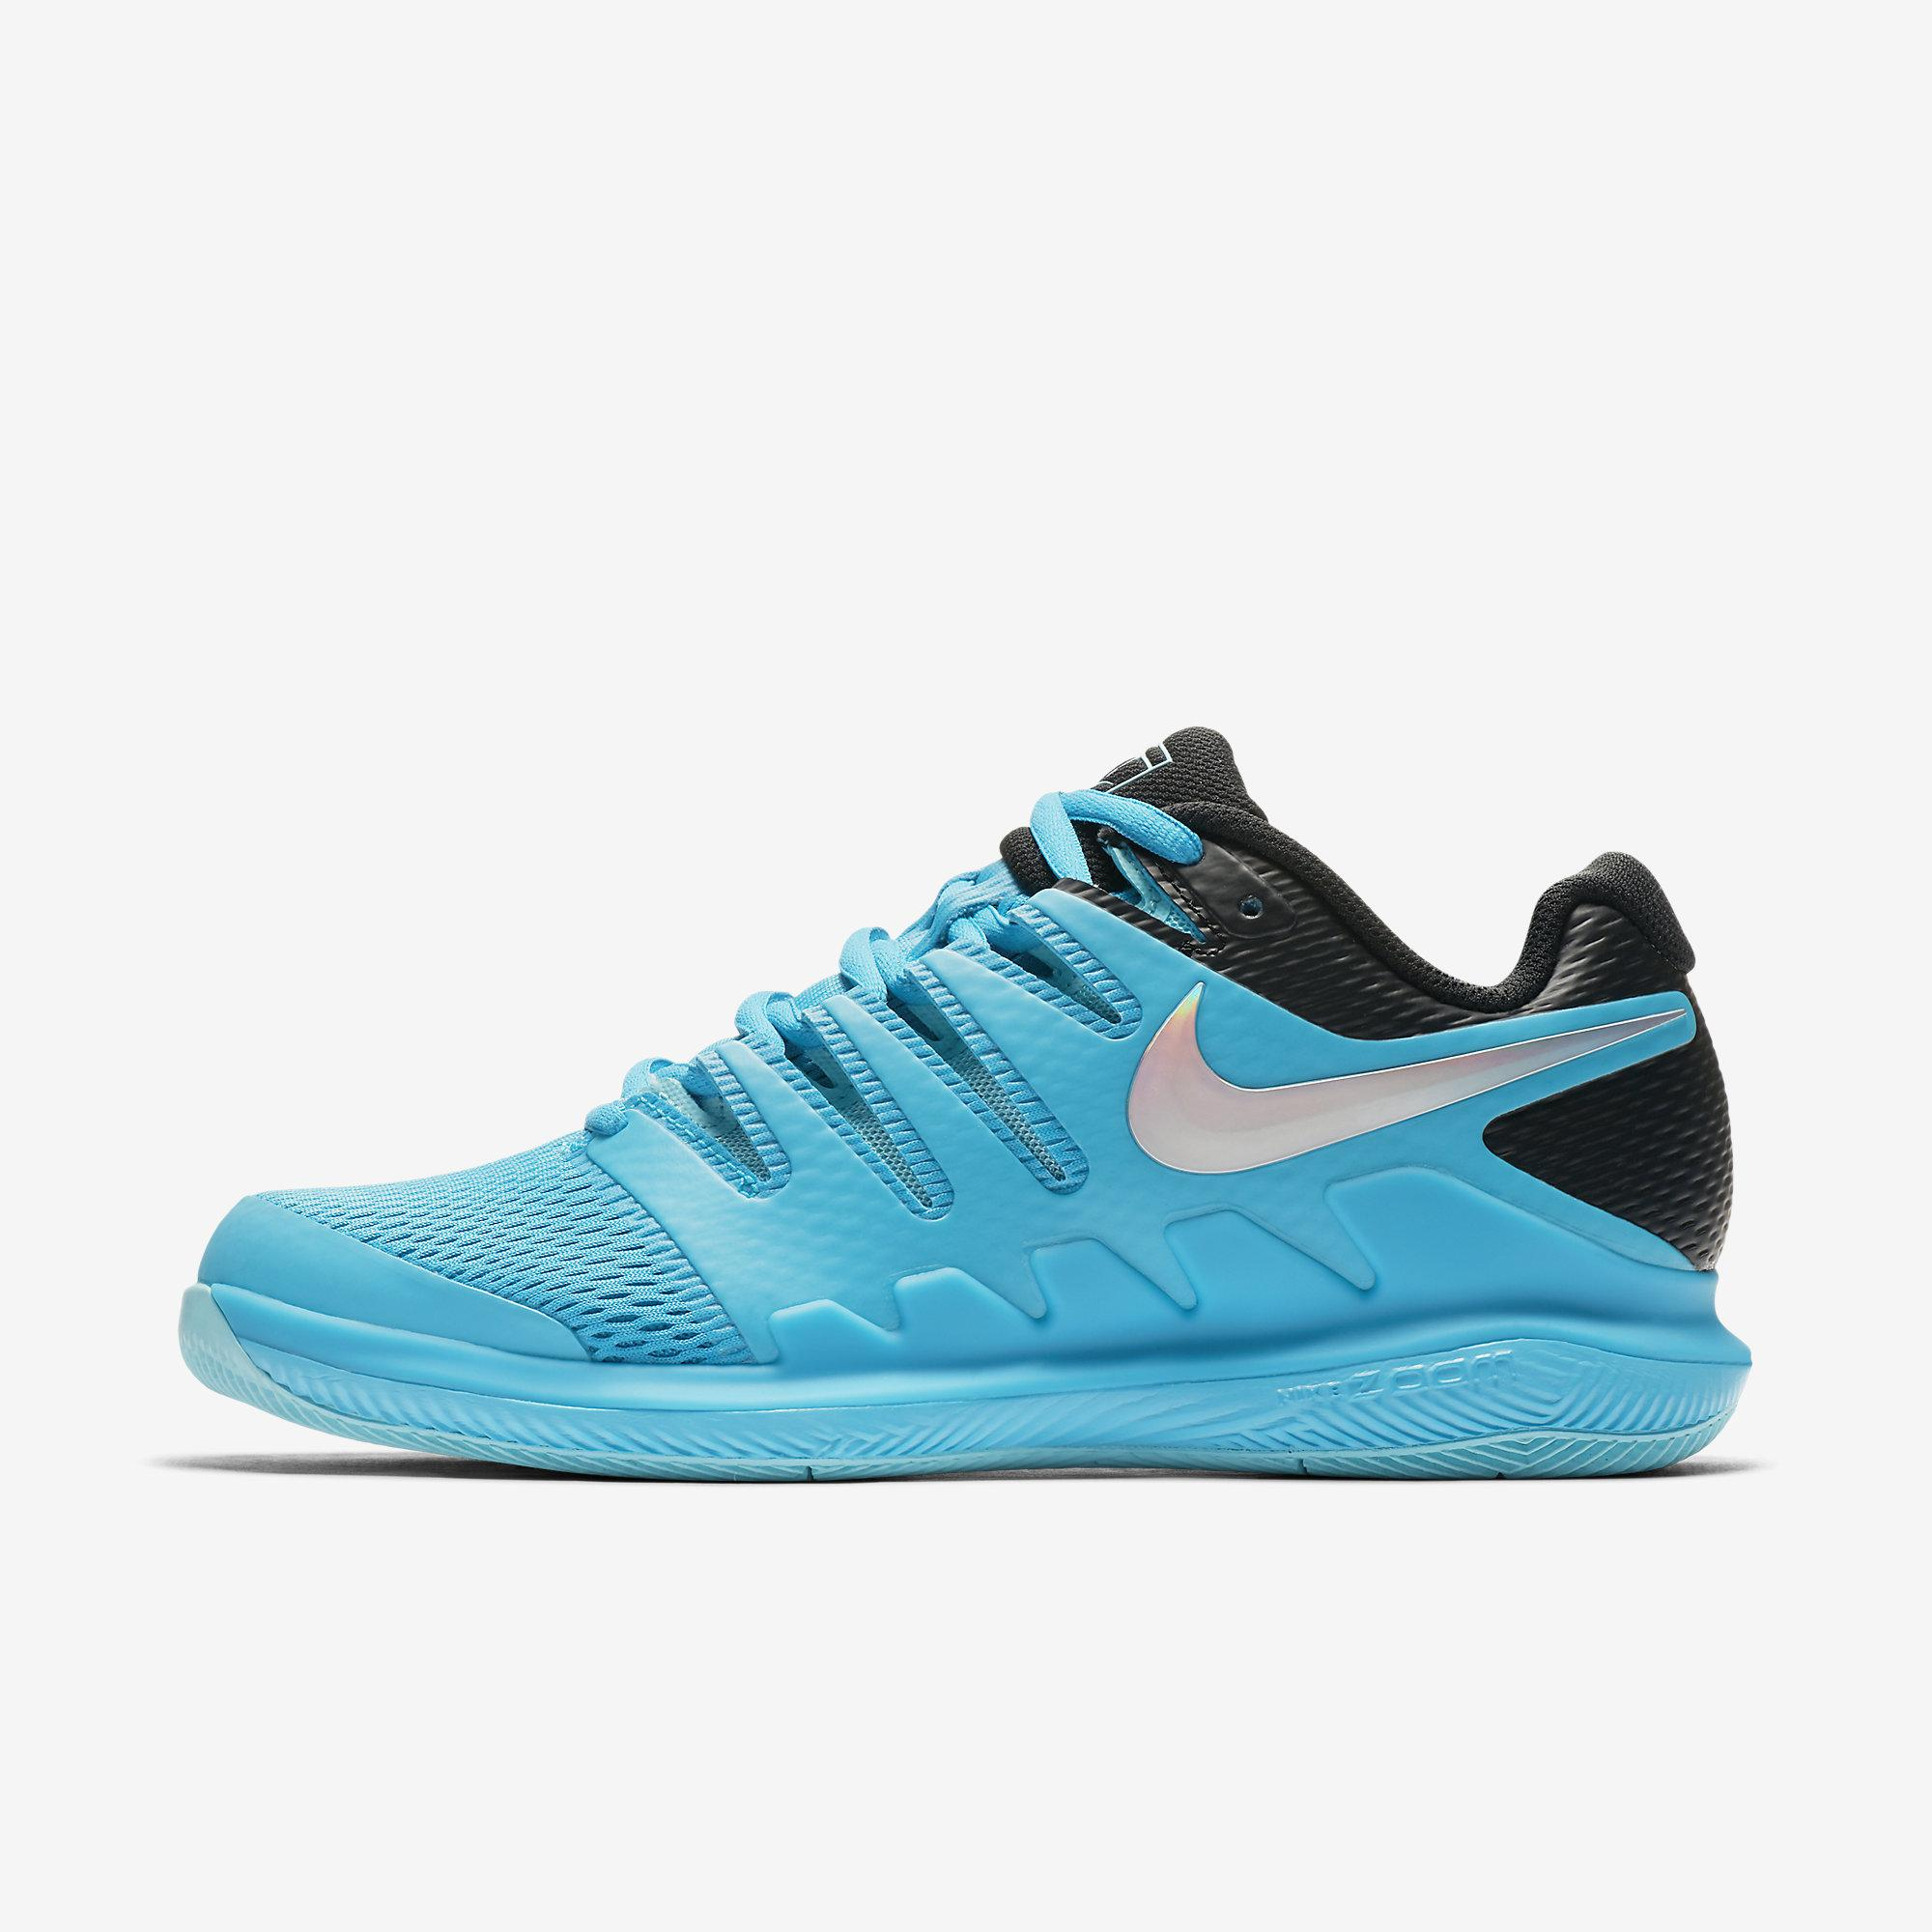 48e810696dbb2 Nike Womens Air Zoom Vapor X Tennis Shoes - Light Blue Fury Black -  Tennisnuts.com